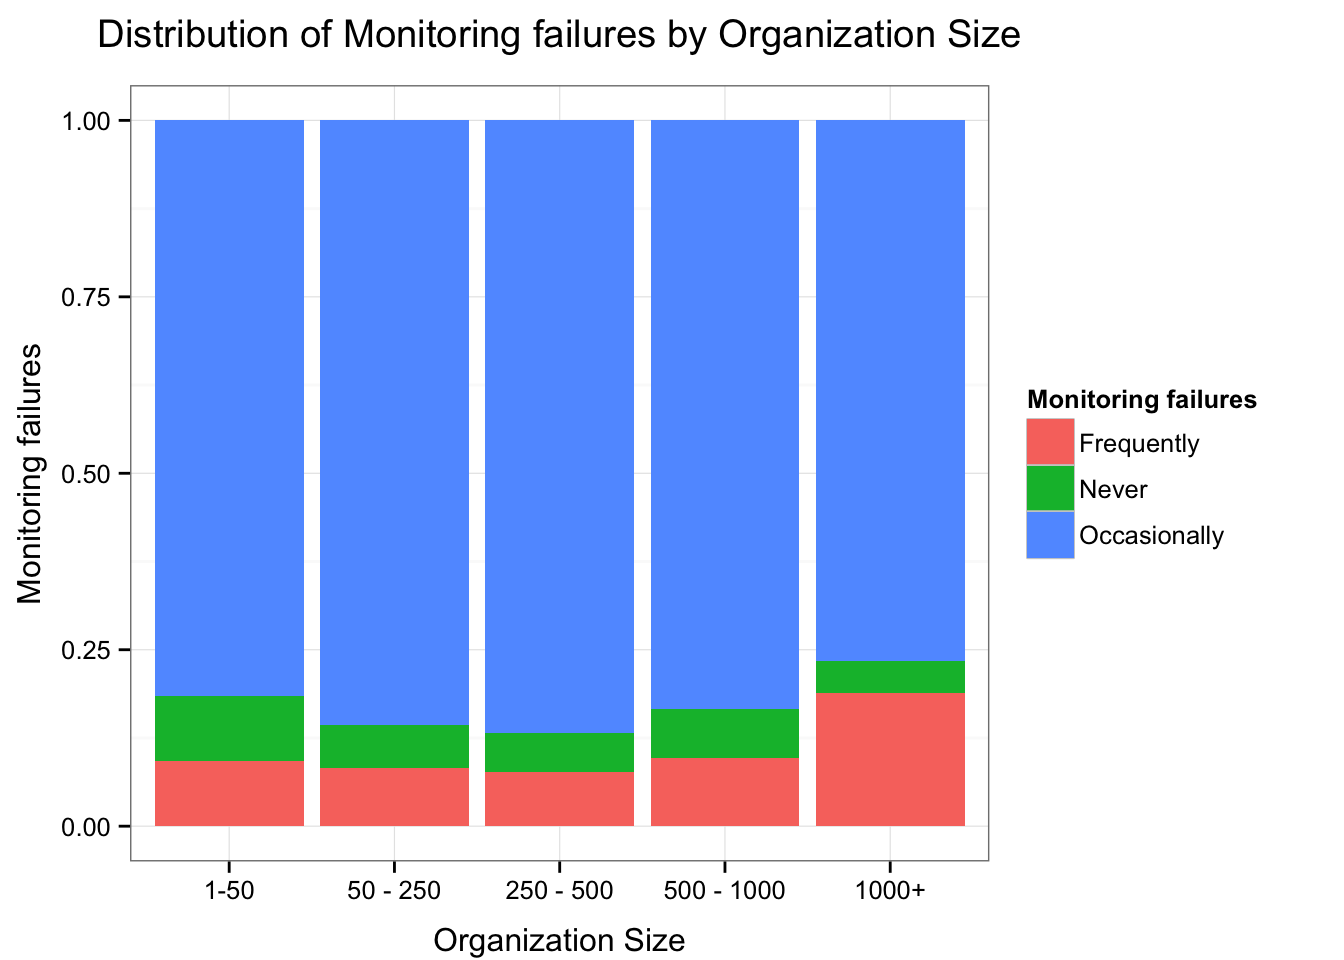 Monitoring Failures by Org Size